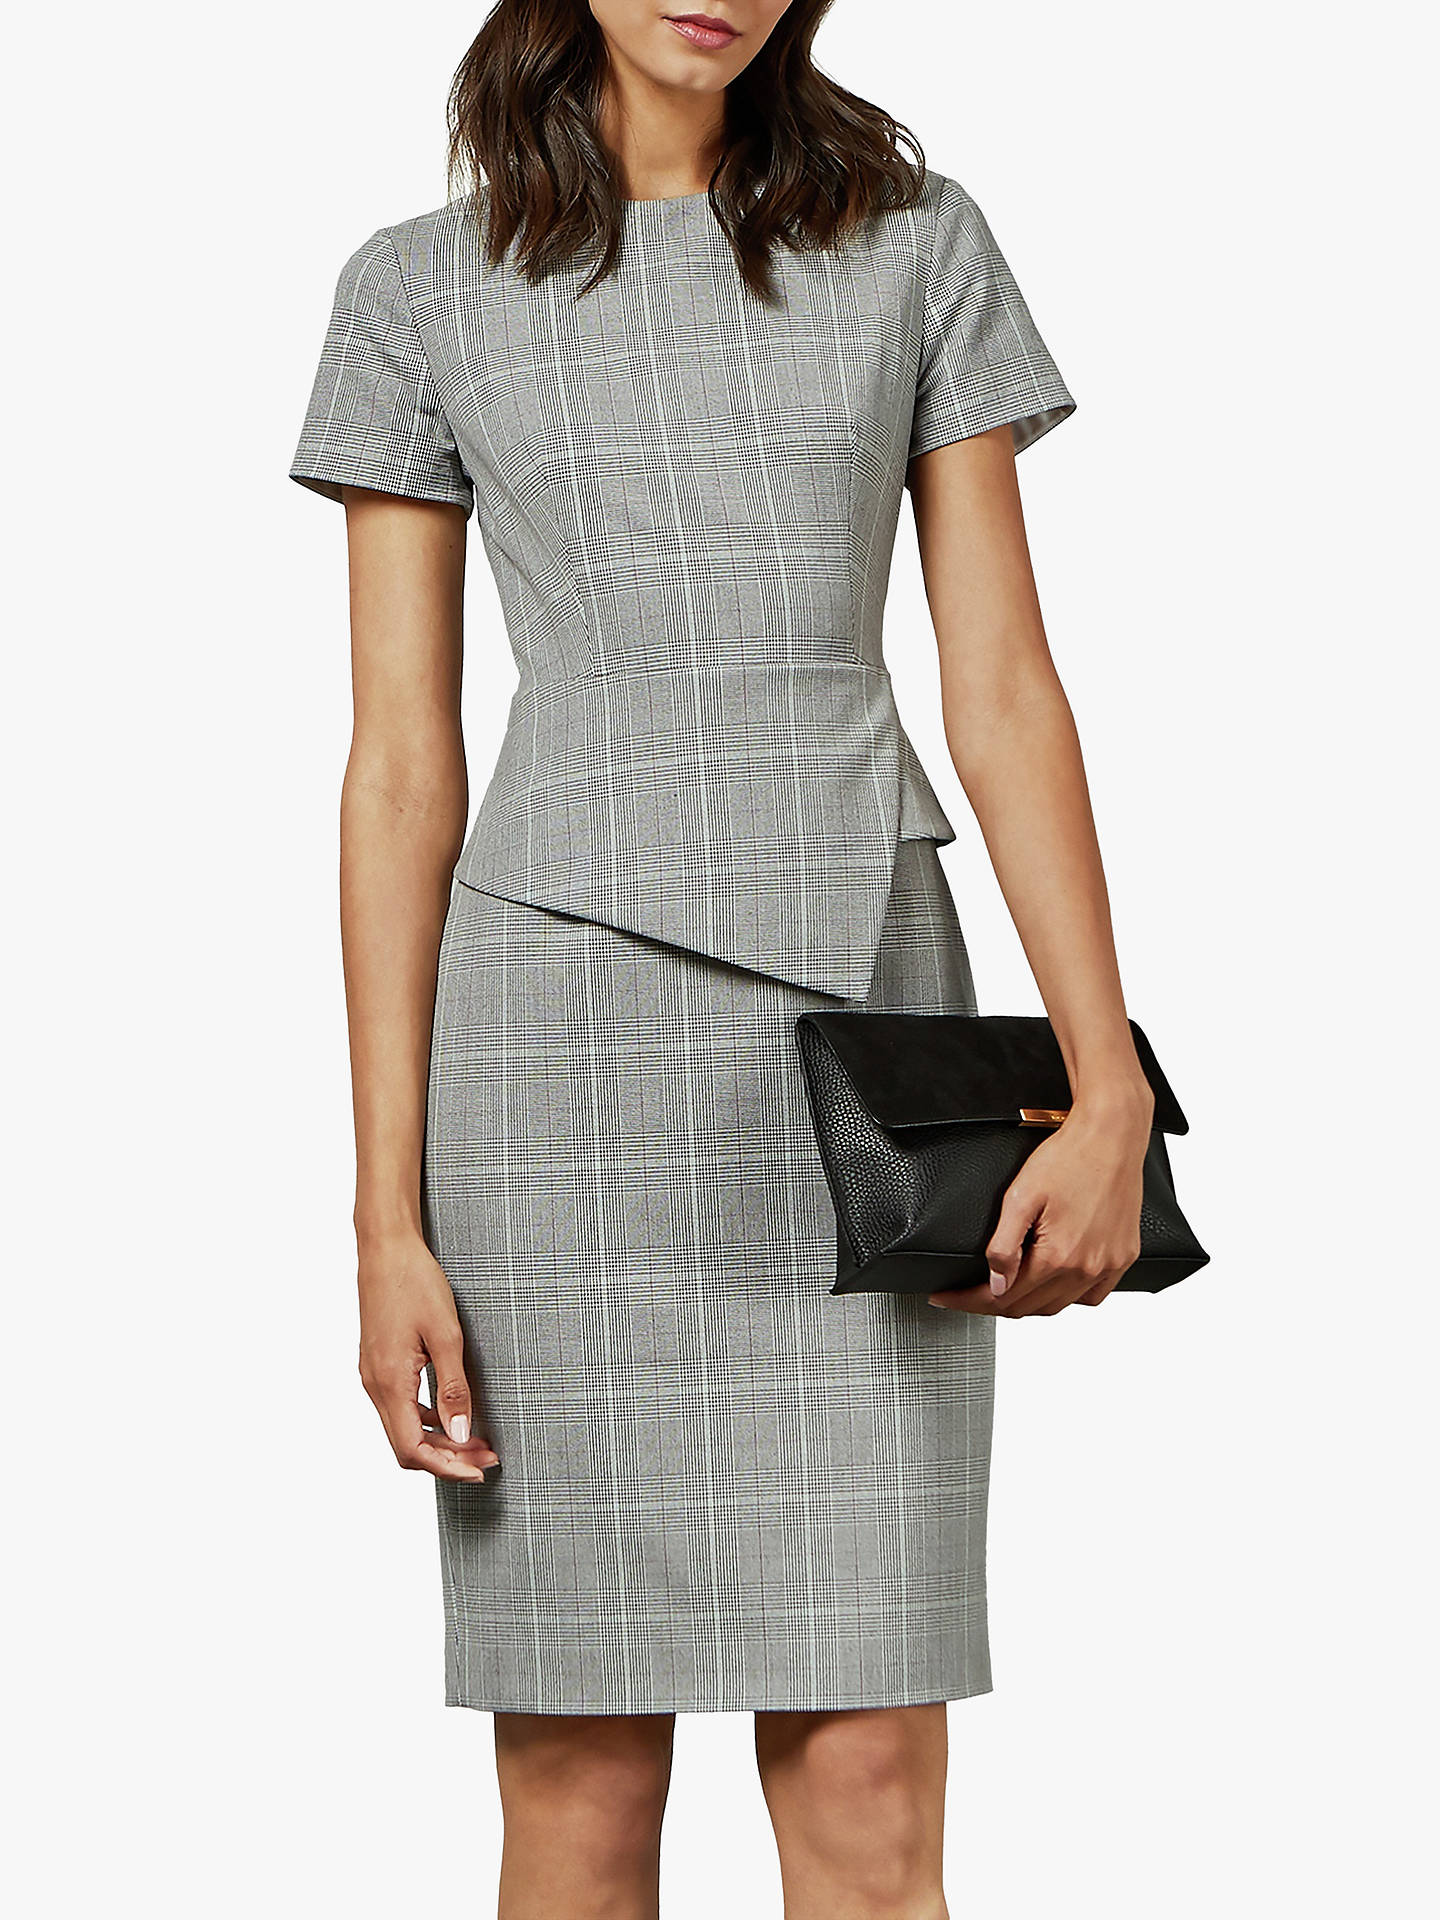 Ted Baker Arria Dress, Charcoal by Ted Baker